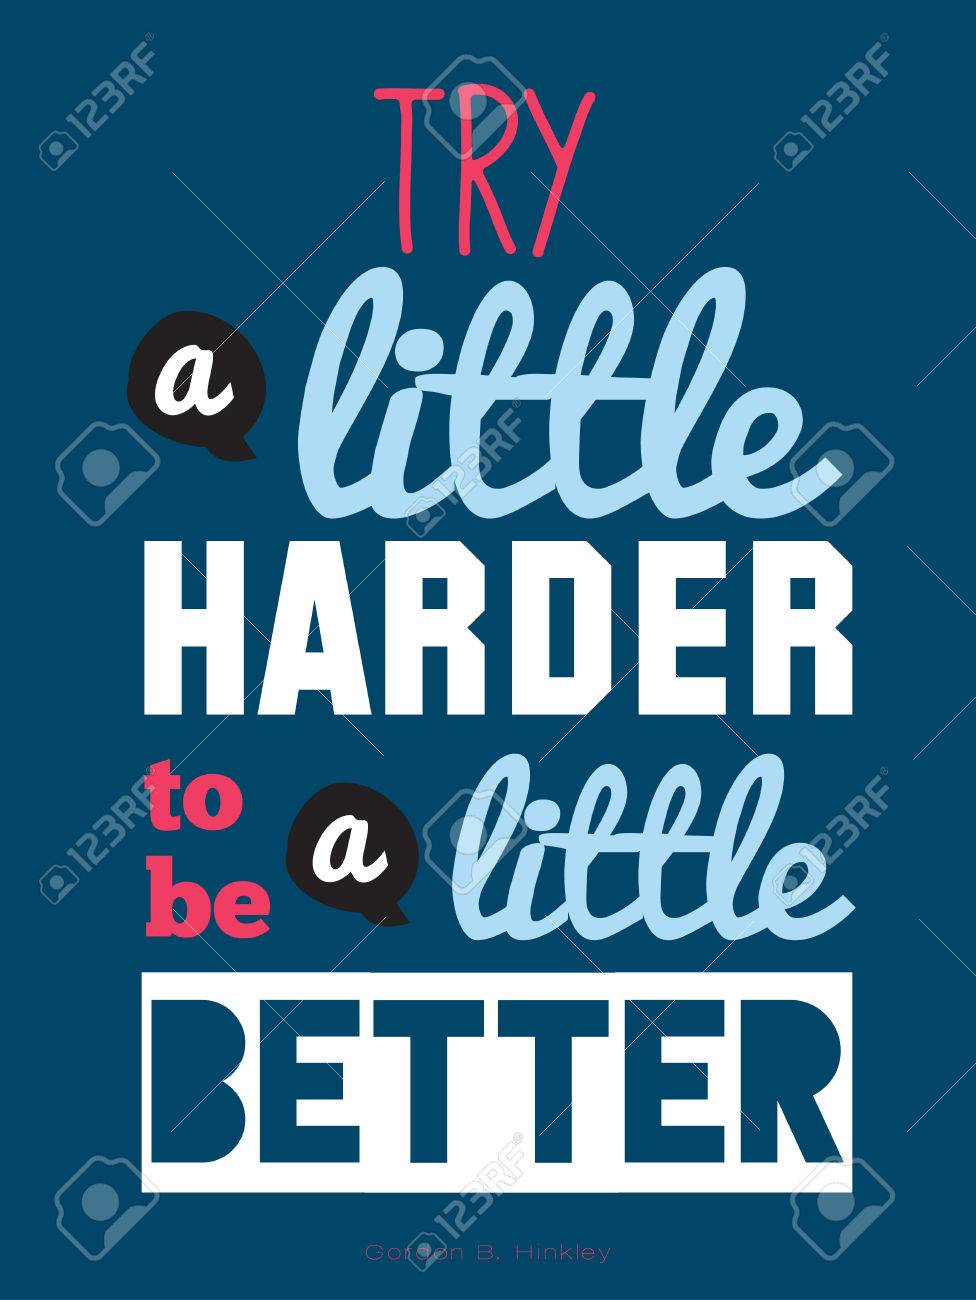 D d poster design - Inspirational And Motivational Quotes Vector Poster Design Stylish And Modern Typographic Good For For